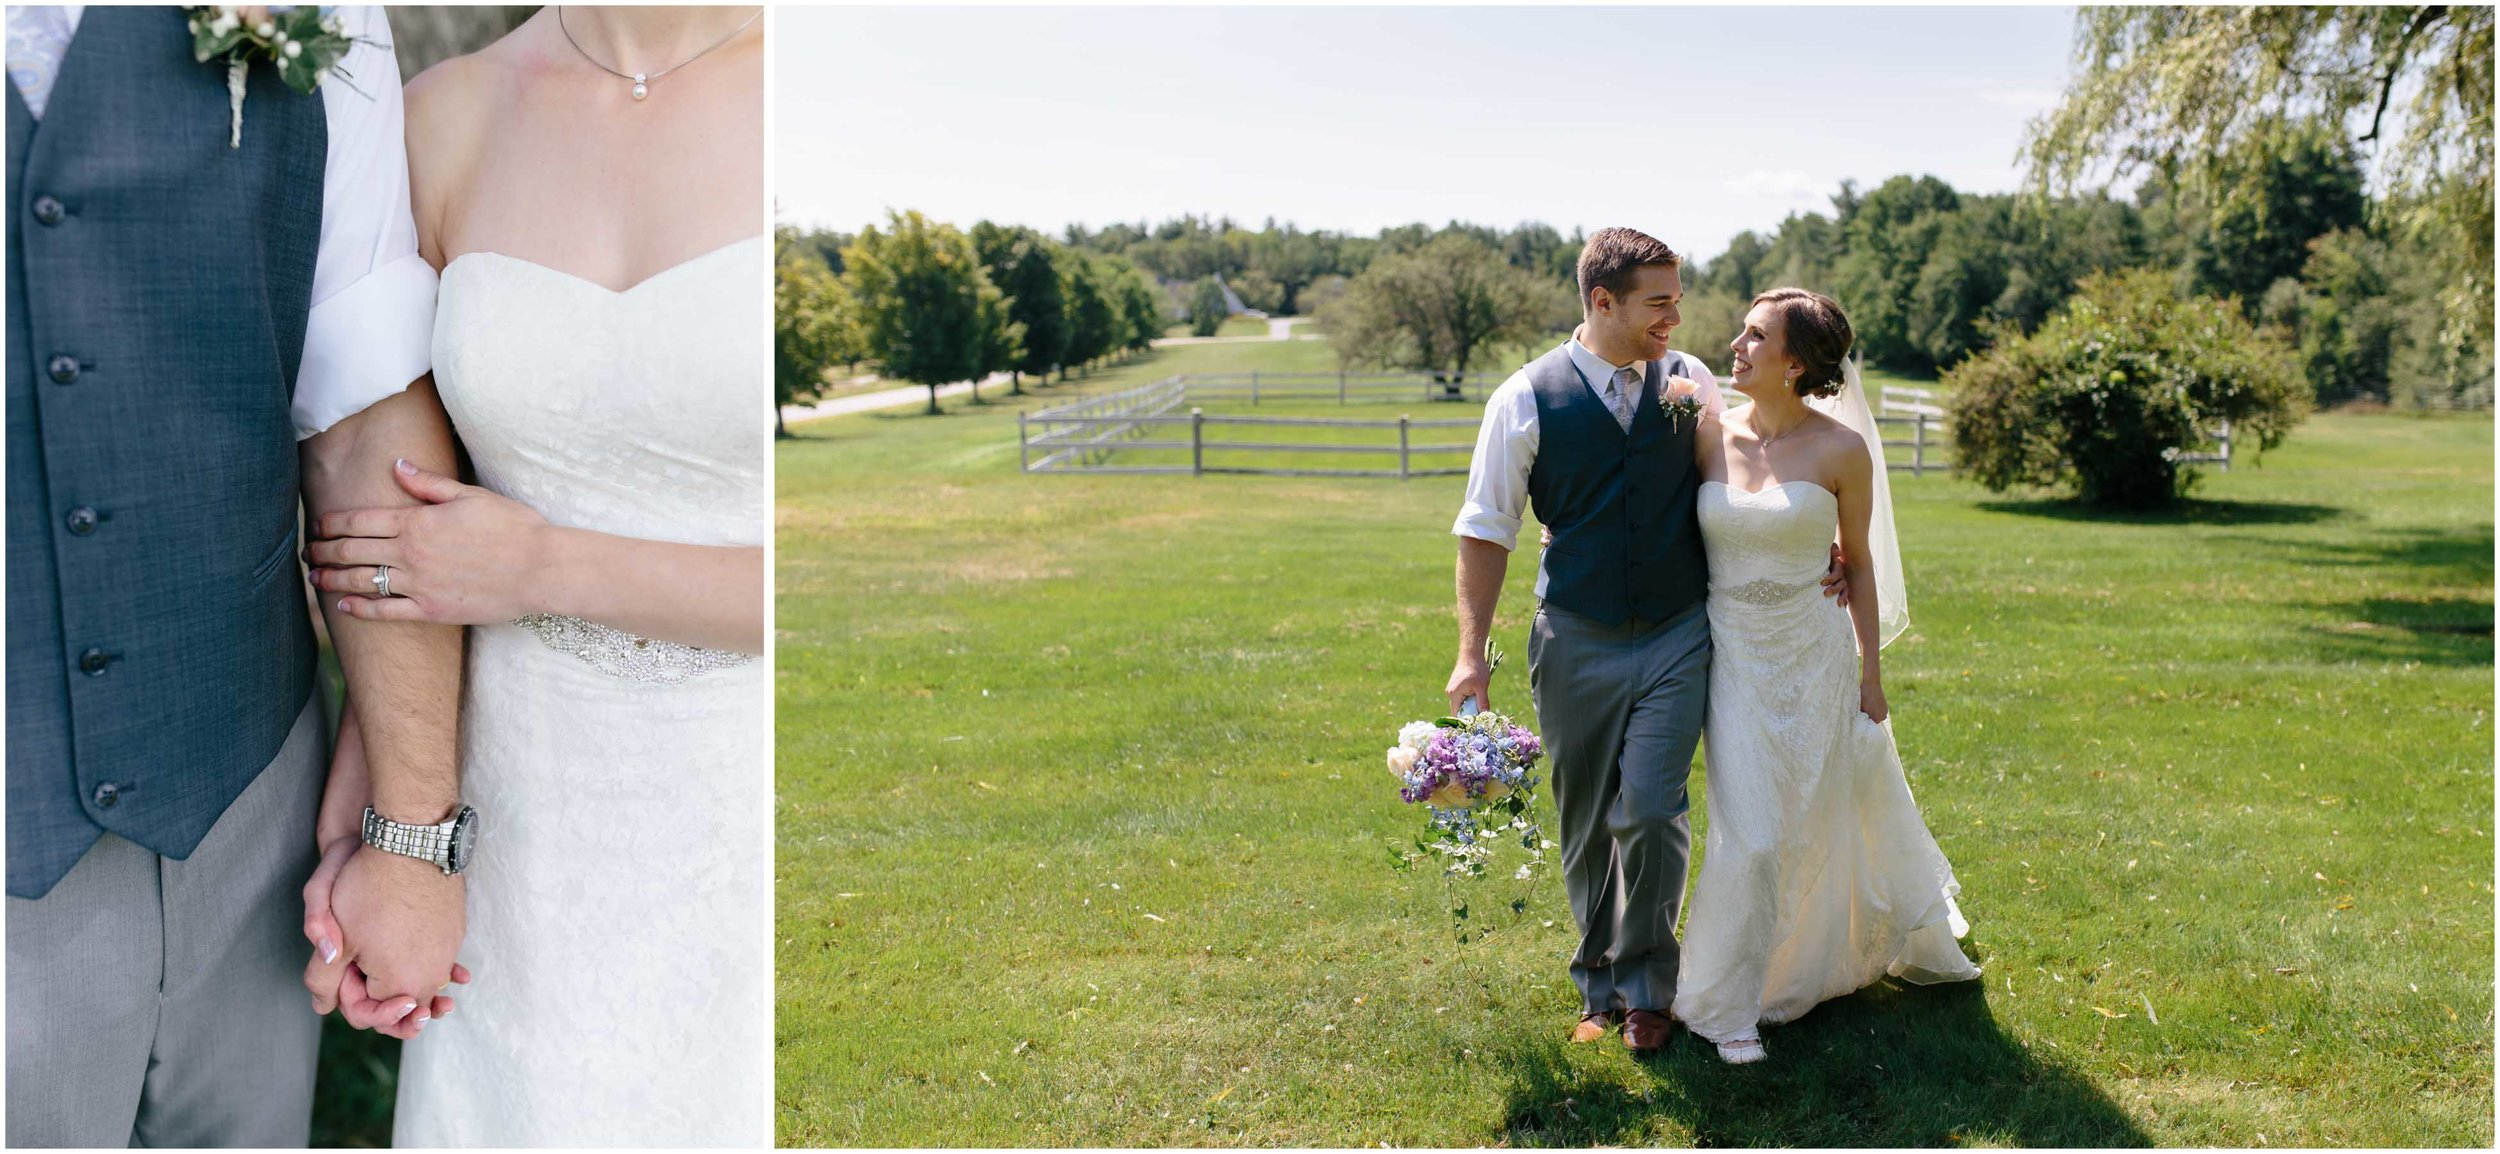 Sunny New Hampshire Summer Wedding at Mile Away Restaurant - bride and groom laughing